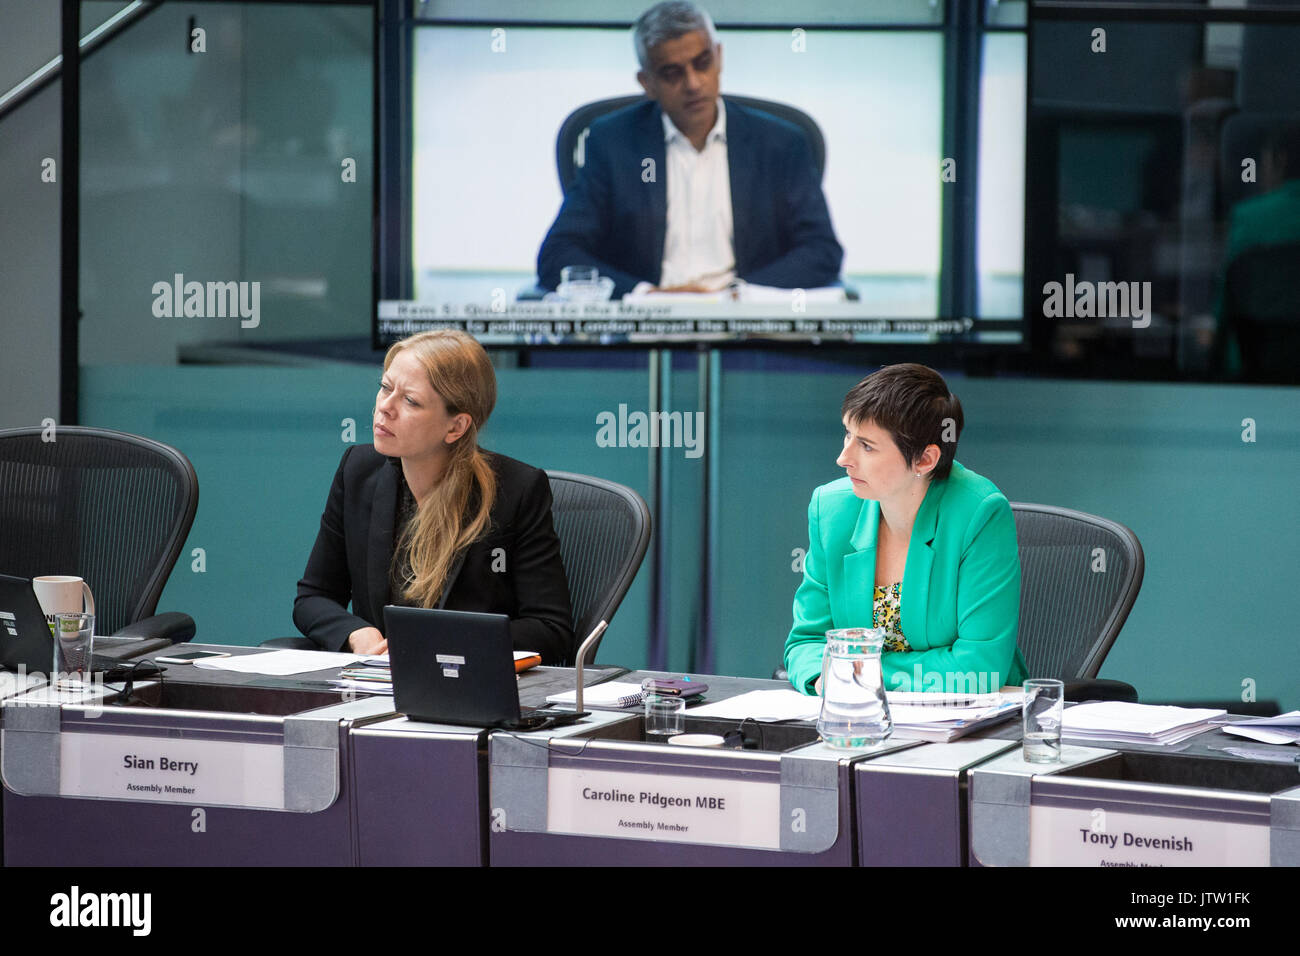 London, UK. 10th August, 2017. London Assembly Members Sian Berry and Caroline Pidgeon MBE listen to Mayor of London Sadiq Khan responding to questions during Mayor's Question Time at City Hall. Among topics discussed were: acid attacks, social housing, expenditure on fire and police services, 4G coverage on underground trains and noise from overnight underground trains. Credit: Mark Kerrison/Alamy Live News - Stock Image